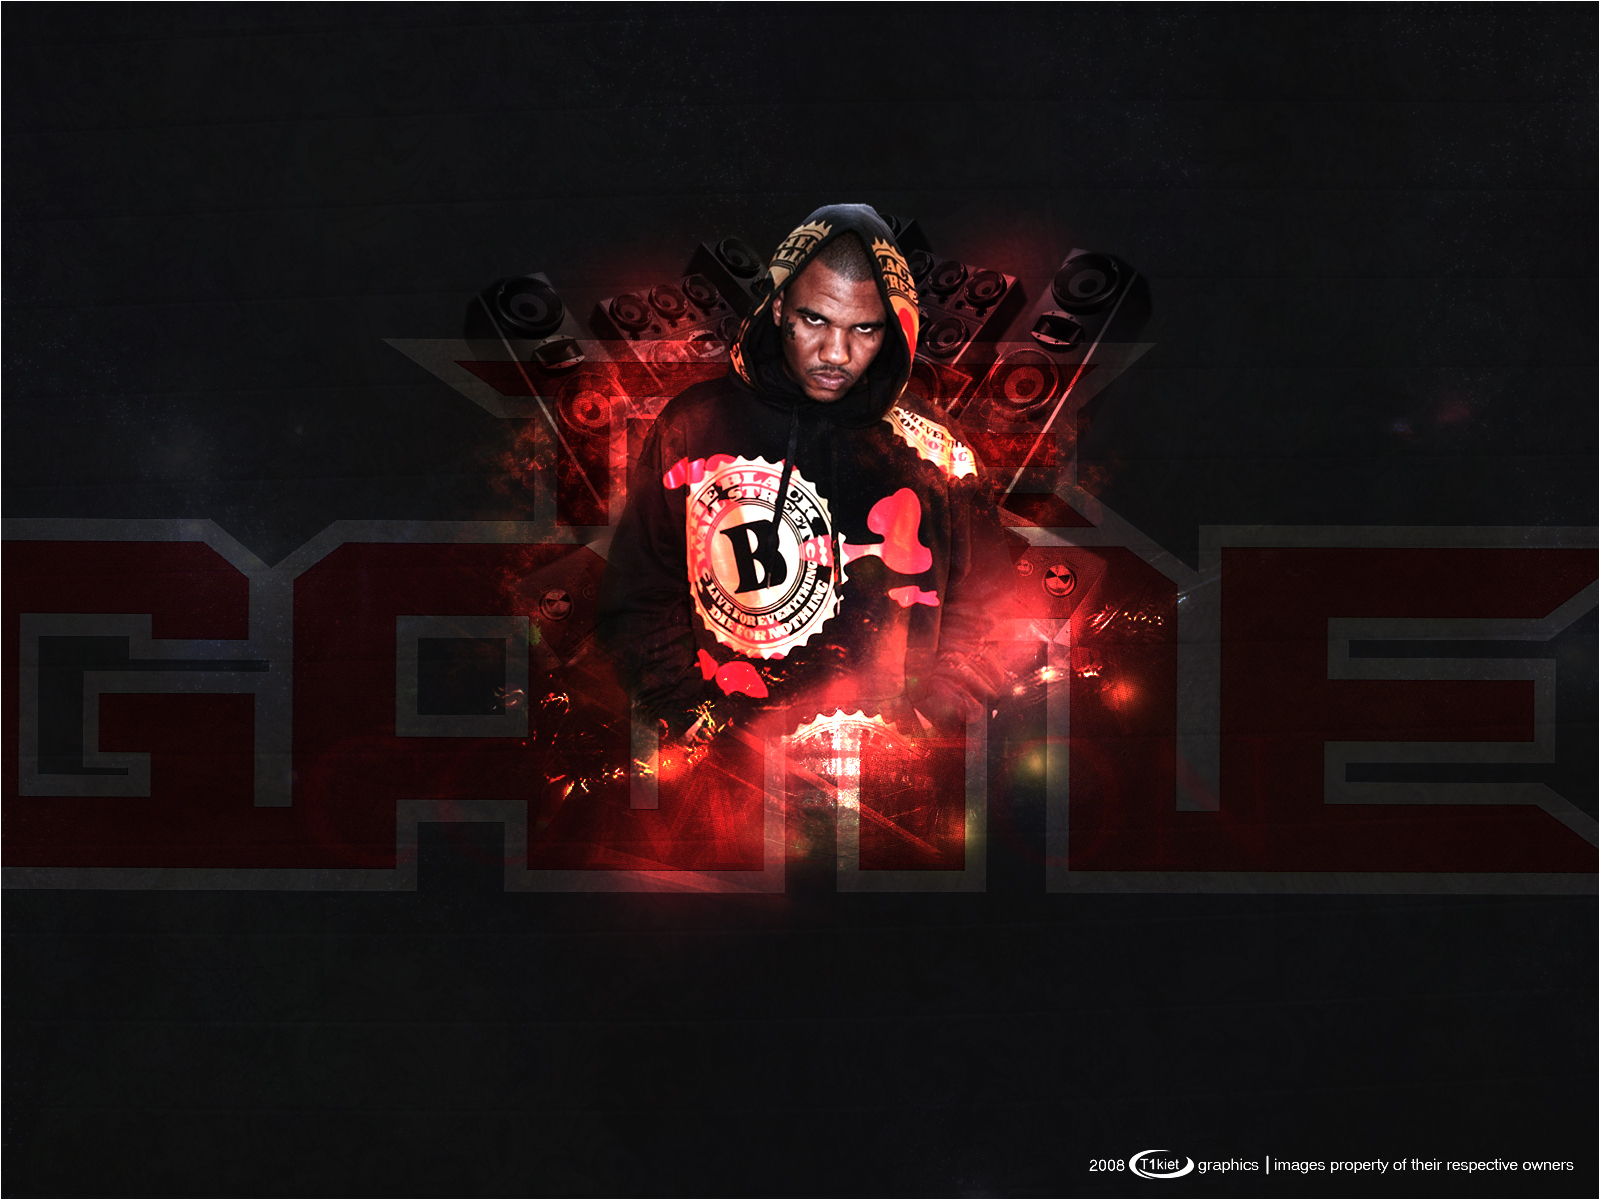 The Game wallpaper   The Game MC Wallpaper 7999327 1600x1200